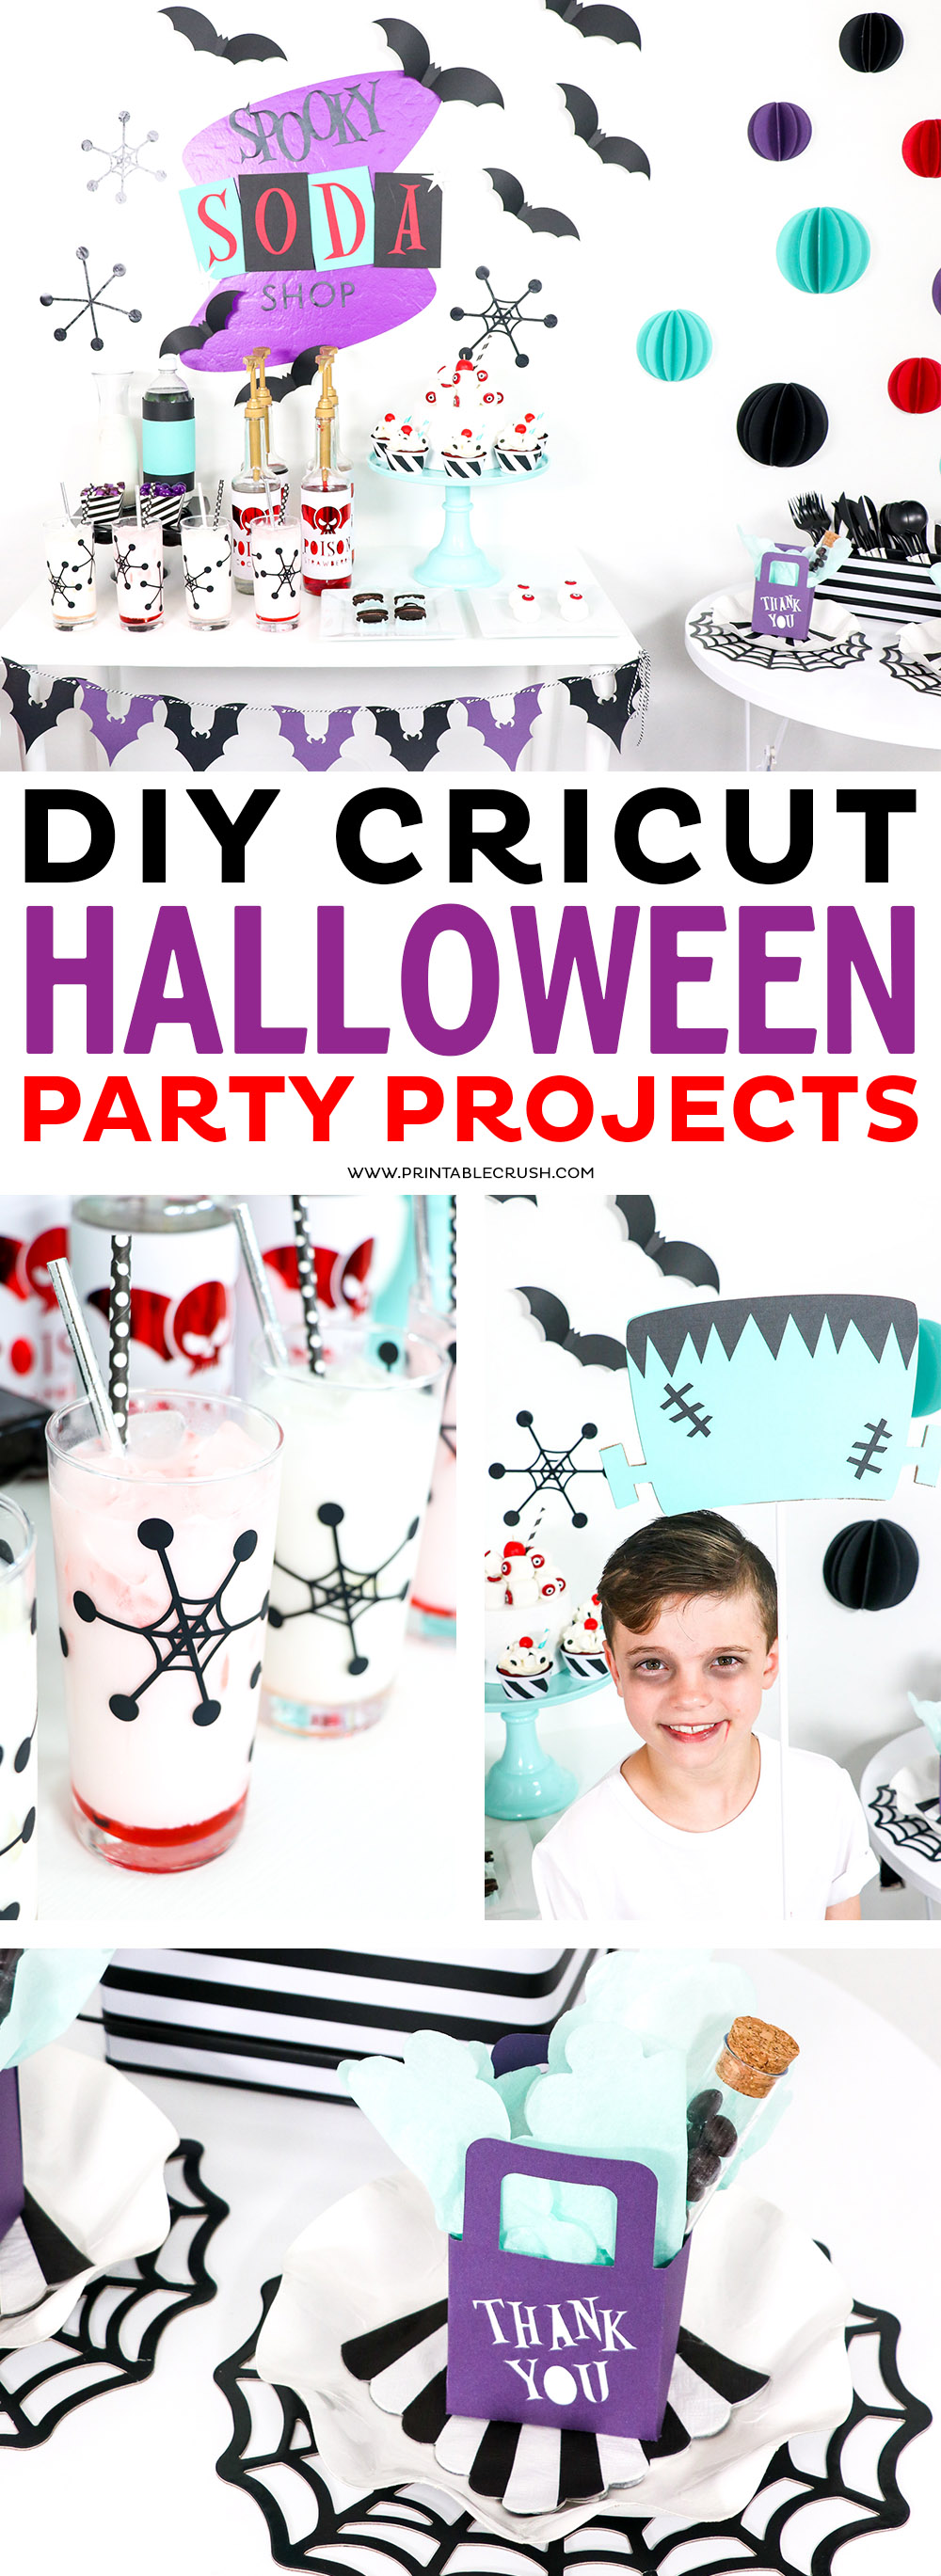 These DIY Cricut Halloween Party Projects are ready to go in Cricut Design Space. Just click on the link to the project and select MAKE IT or you can customize it! #cricutmade #cricutprojects #sayitwithcricut #halloweenparty via @printablecrush